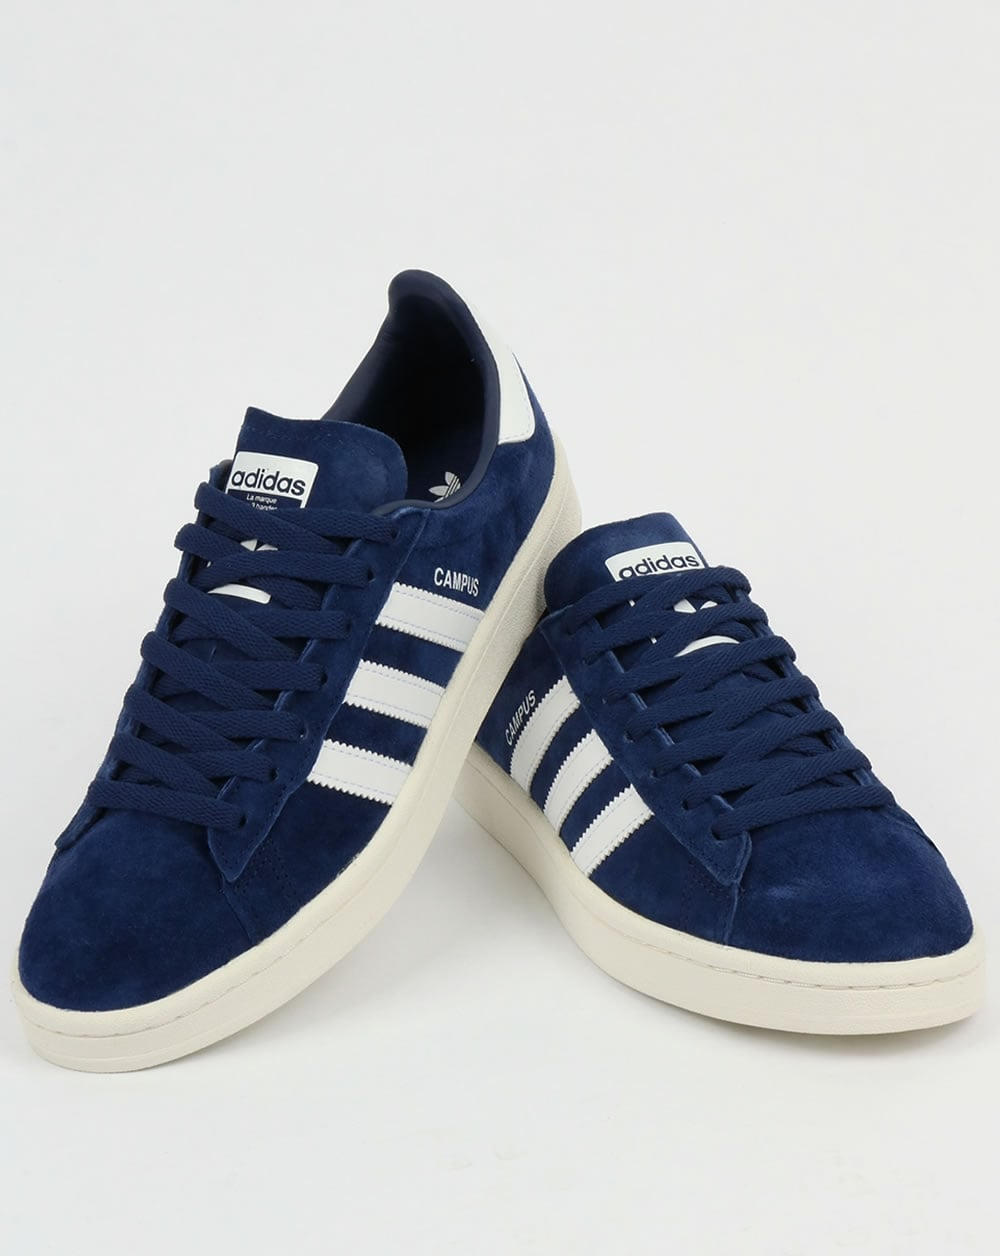 best sneakers 4cd9f 04aef adidas Trainers Adidas Campus Trainers Rich Navy White